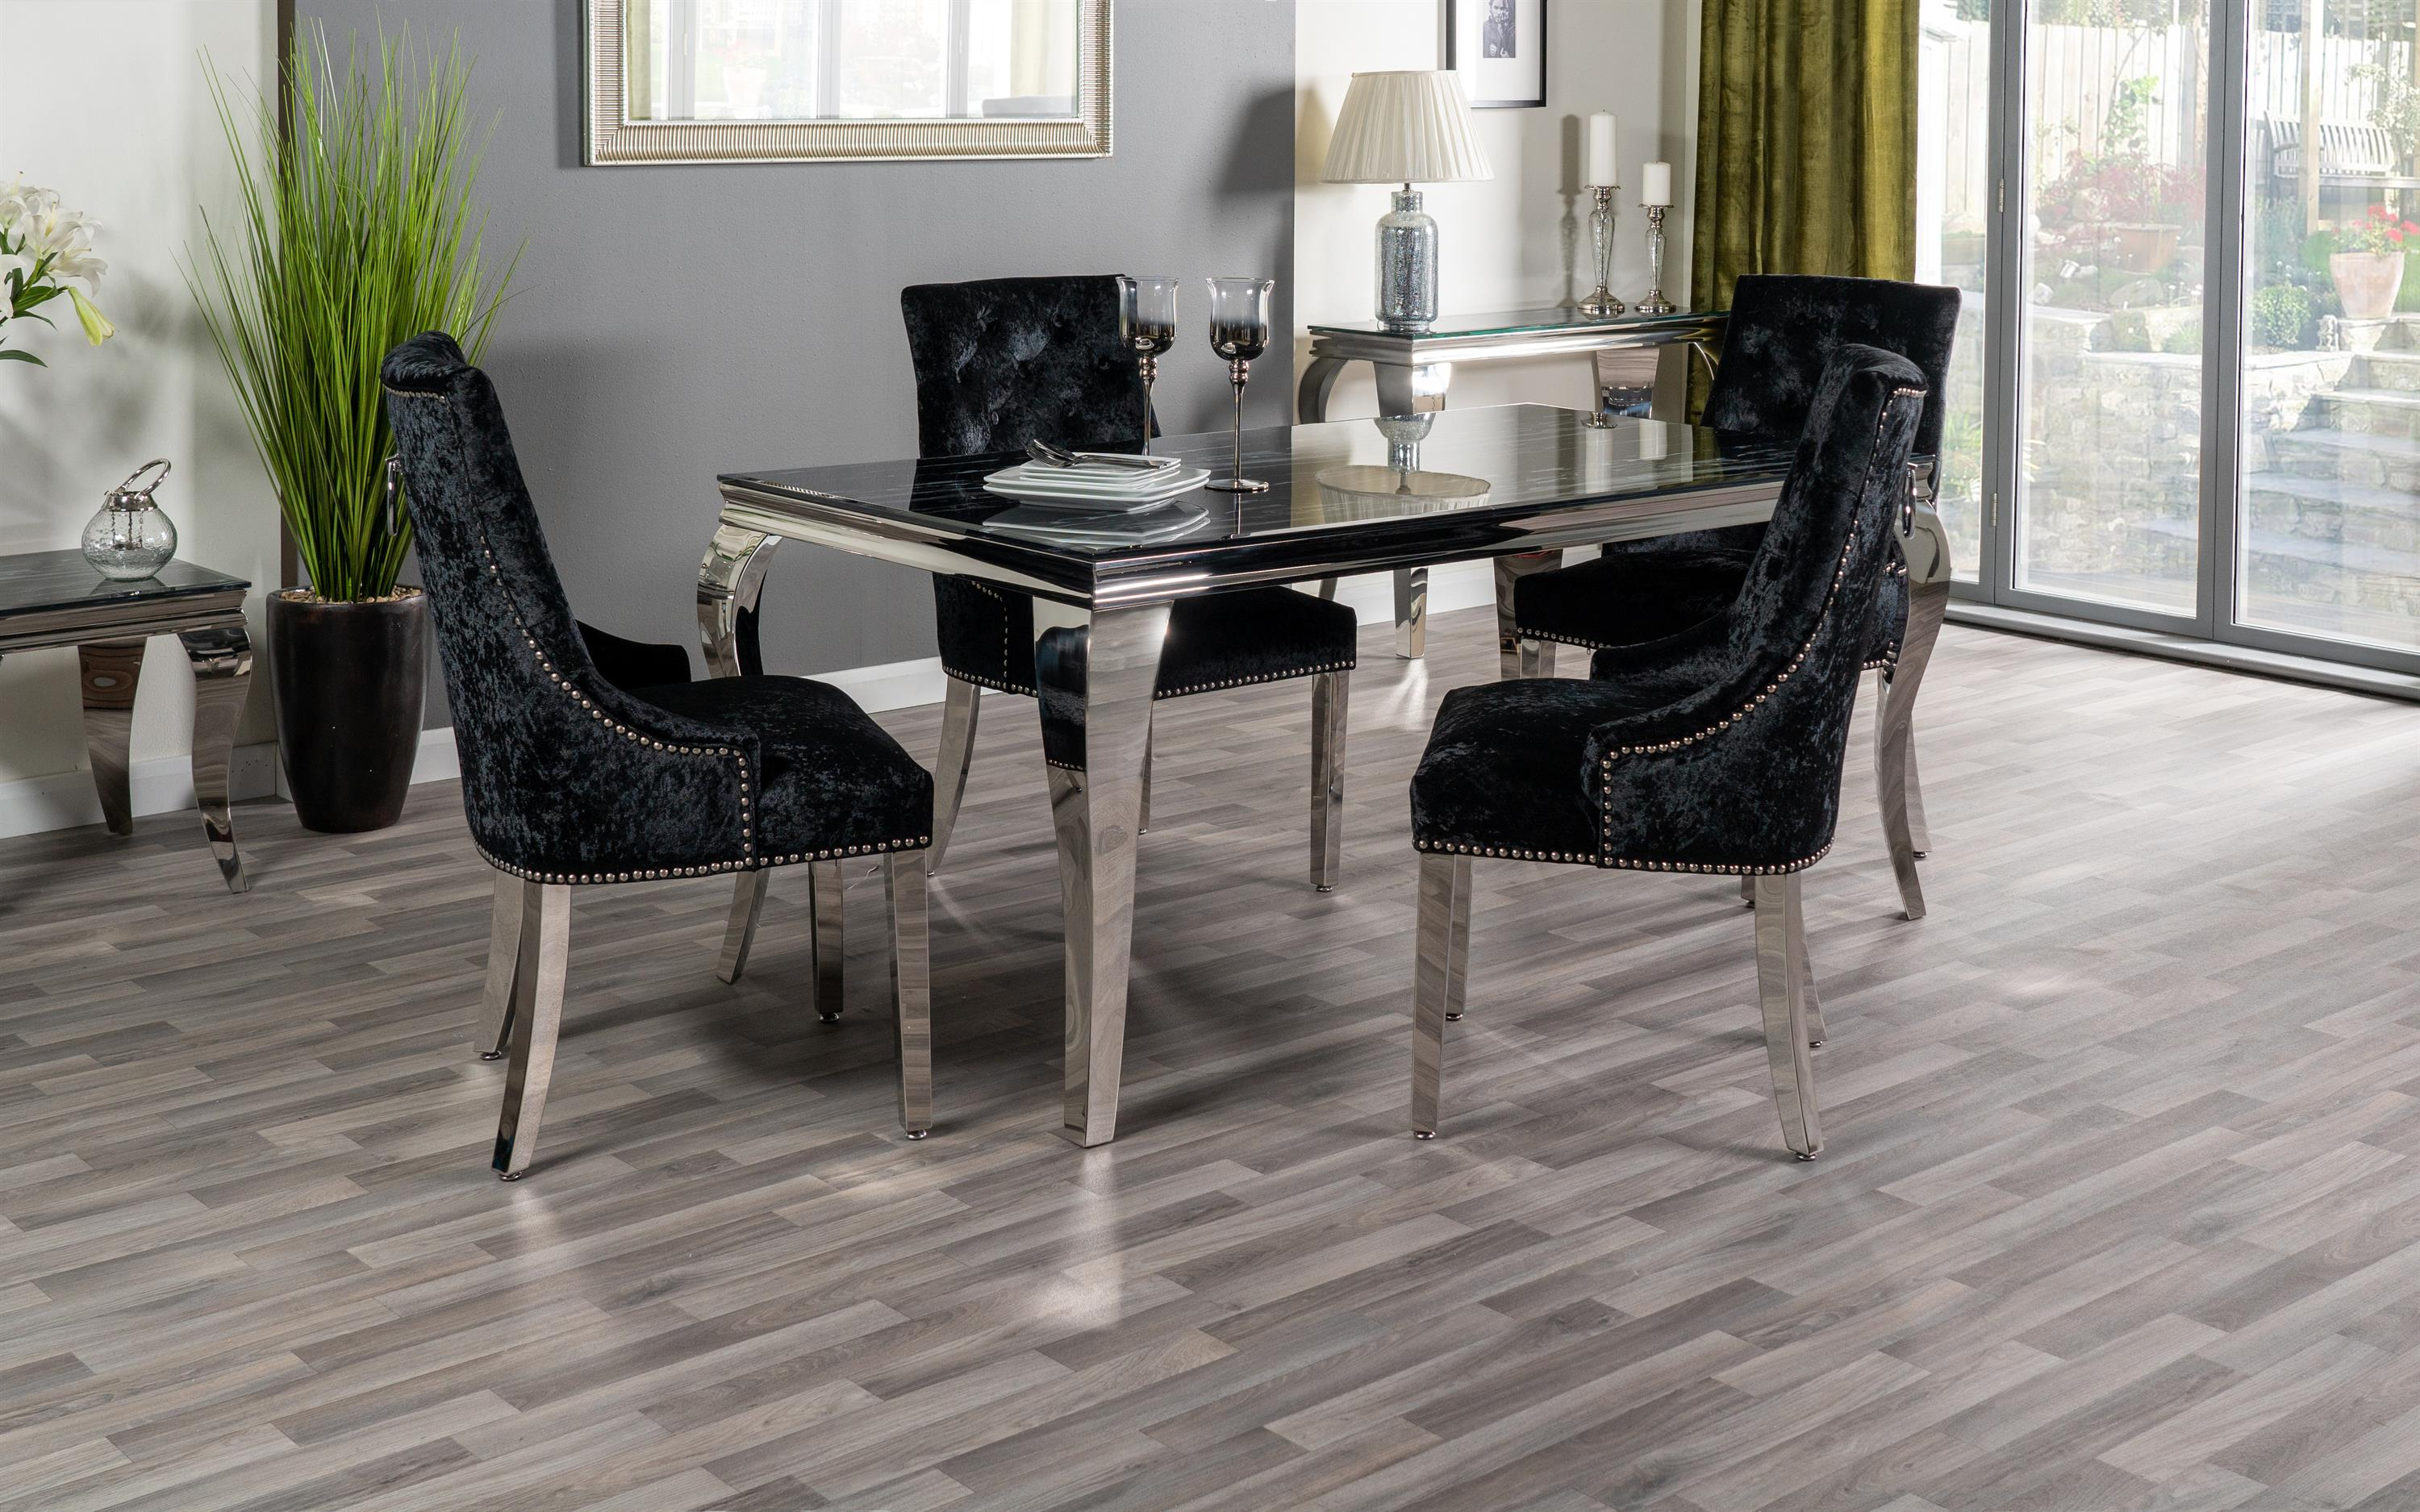 Paris Marble Effect Dining Table & 4 Black Chairs